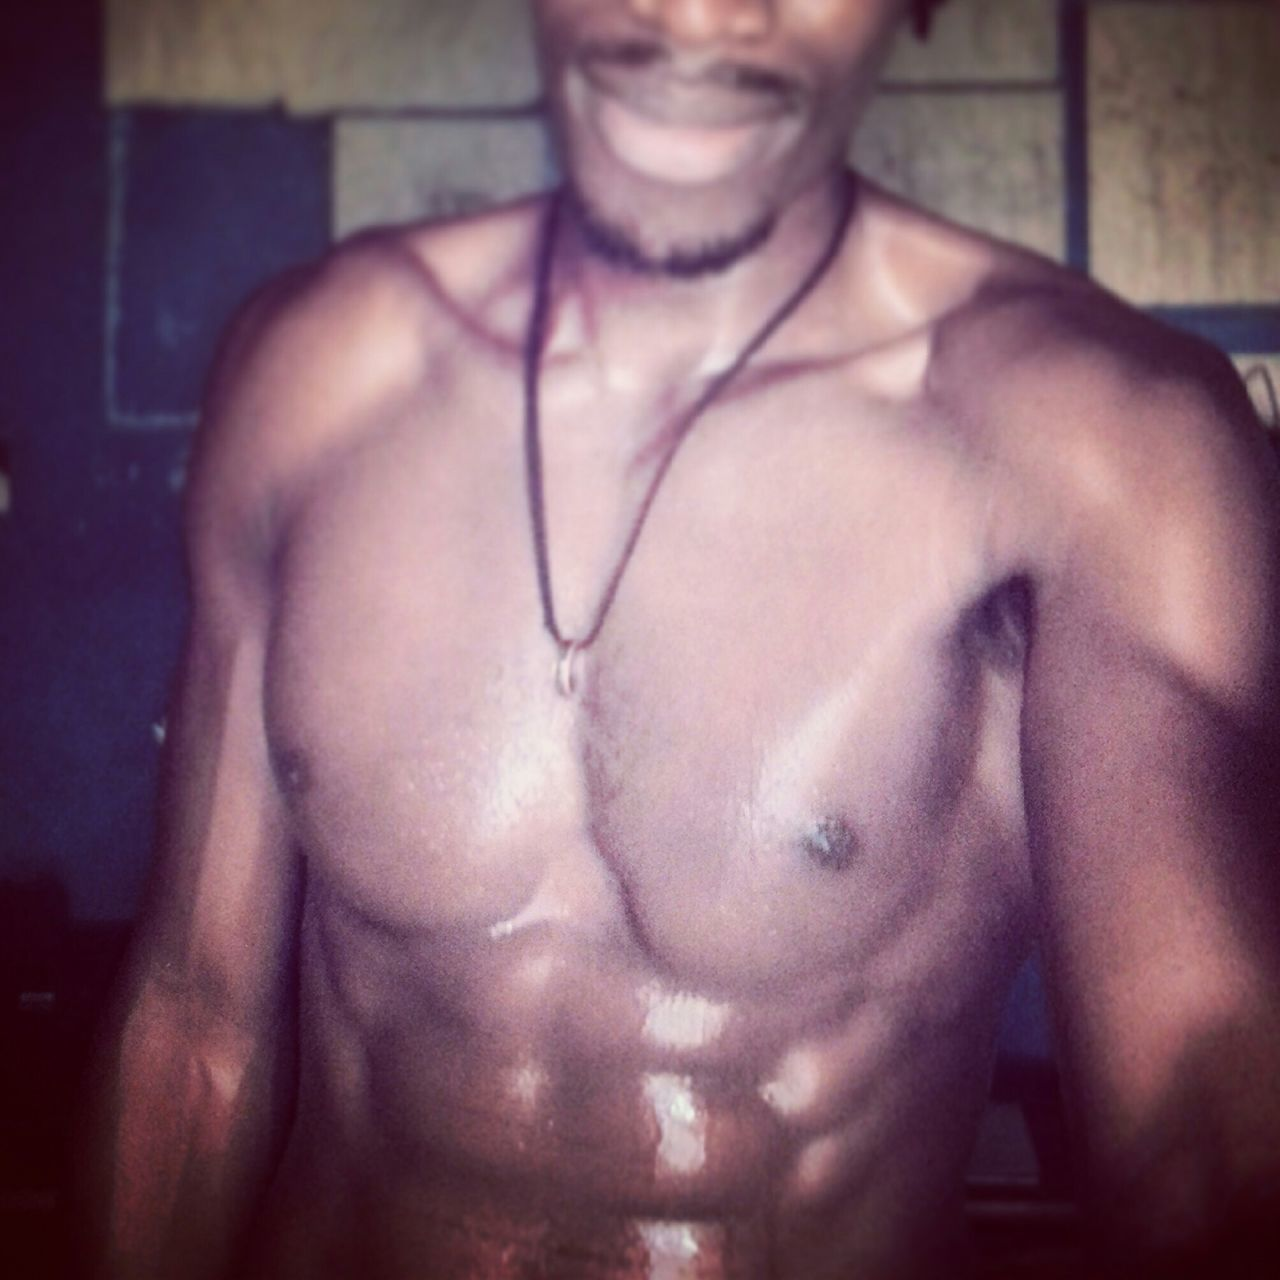 Been pushing myself hard this past week Workout Calisthenic Barbrother Fitness Me Abs